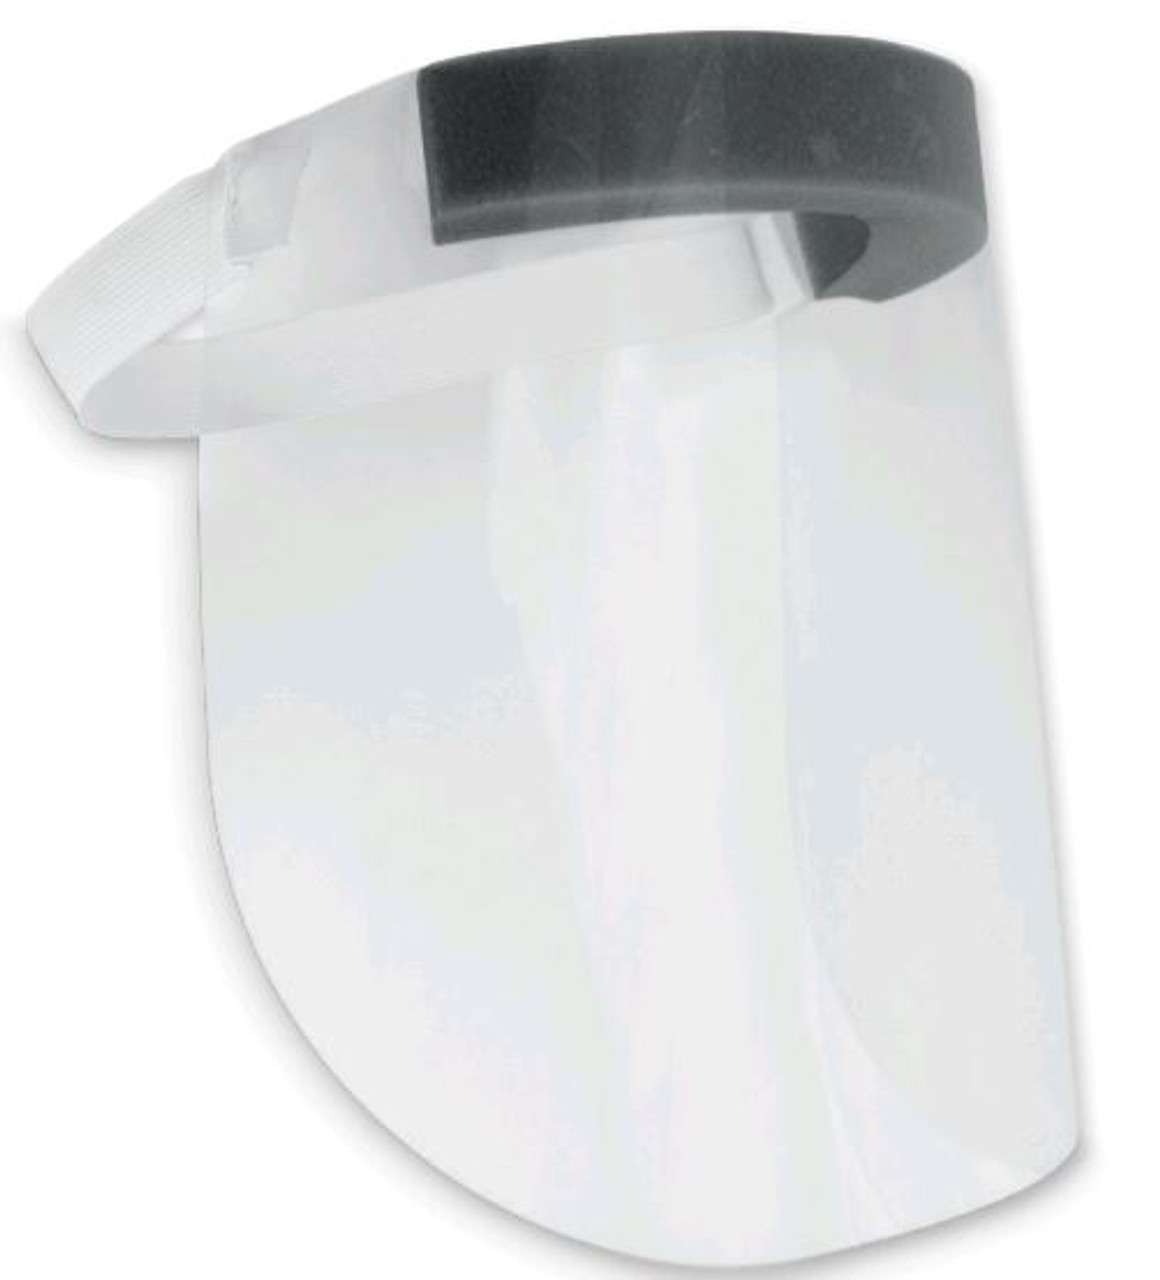 Clear Disposable Copolyester Face Shield with Foam Padding and Elastic Strap